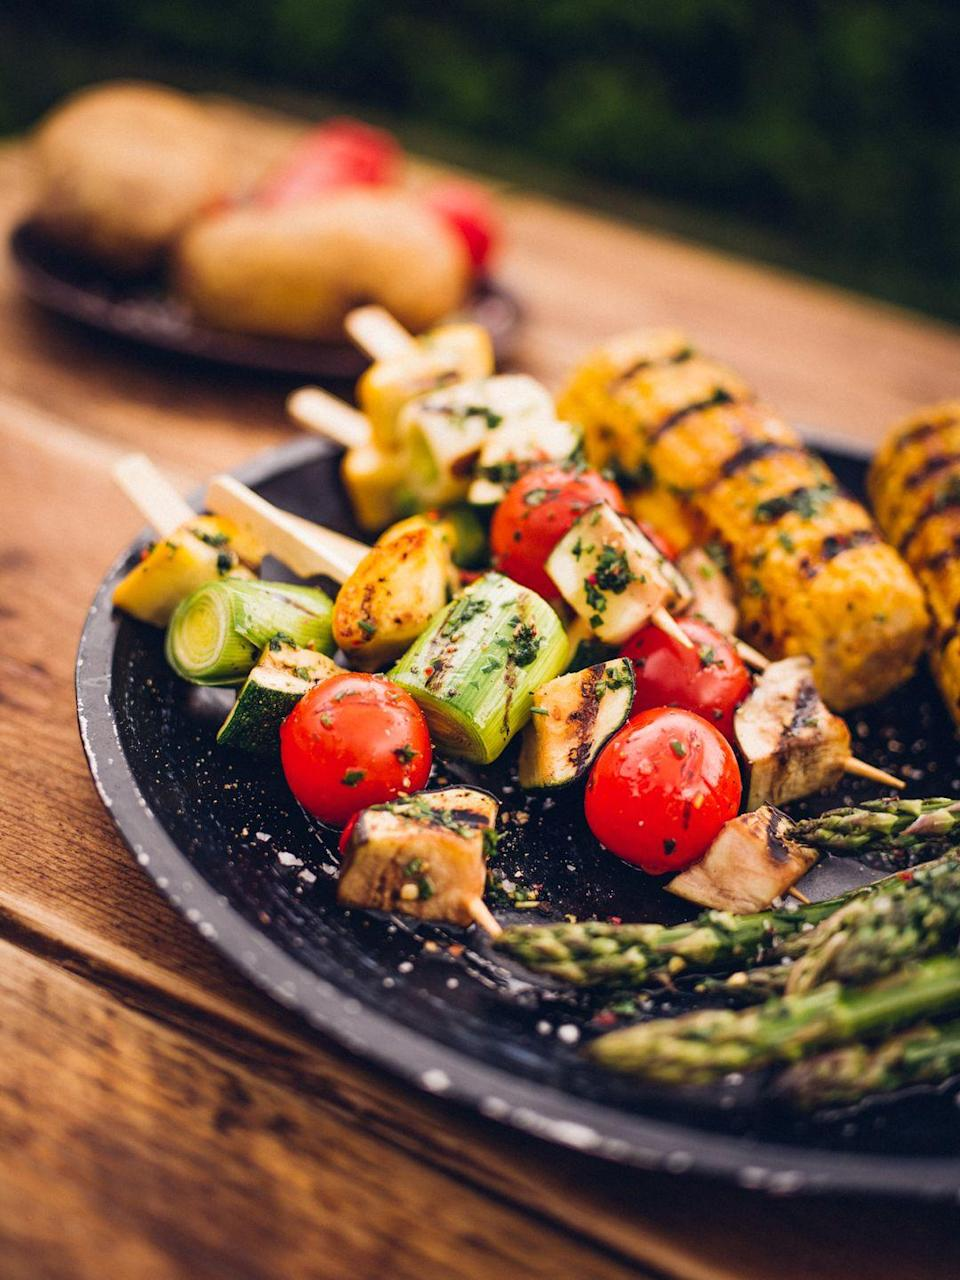 """<p>Father's Day is best celebrated with family and amazing food, so fire up the grill to make a delicious meal that everyone can enjoy. Take the opportunity to learn a thing or two from dad, or simply cheer him on as he serves plate after plate of juicy burgers, grilled veggies and more.<br></p><p><a class=""""link rapid-noclick-resp"""" href=""""https://www.goodhousekeeping.com/holidays/fathers-day/g32450796/fathers-day-dinner-ideas/"""" rel=""""nofollow noopener"""" target=""""_blank"""" data-ylk=""""slk:TRY THESE FATHER'S DAY RECIPES"""">TRY THESE FATHER'S DAY RECIPES</a></p>"""